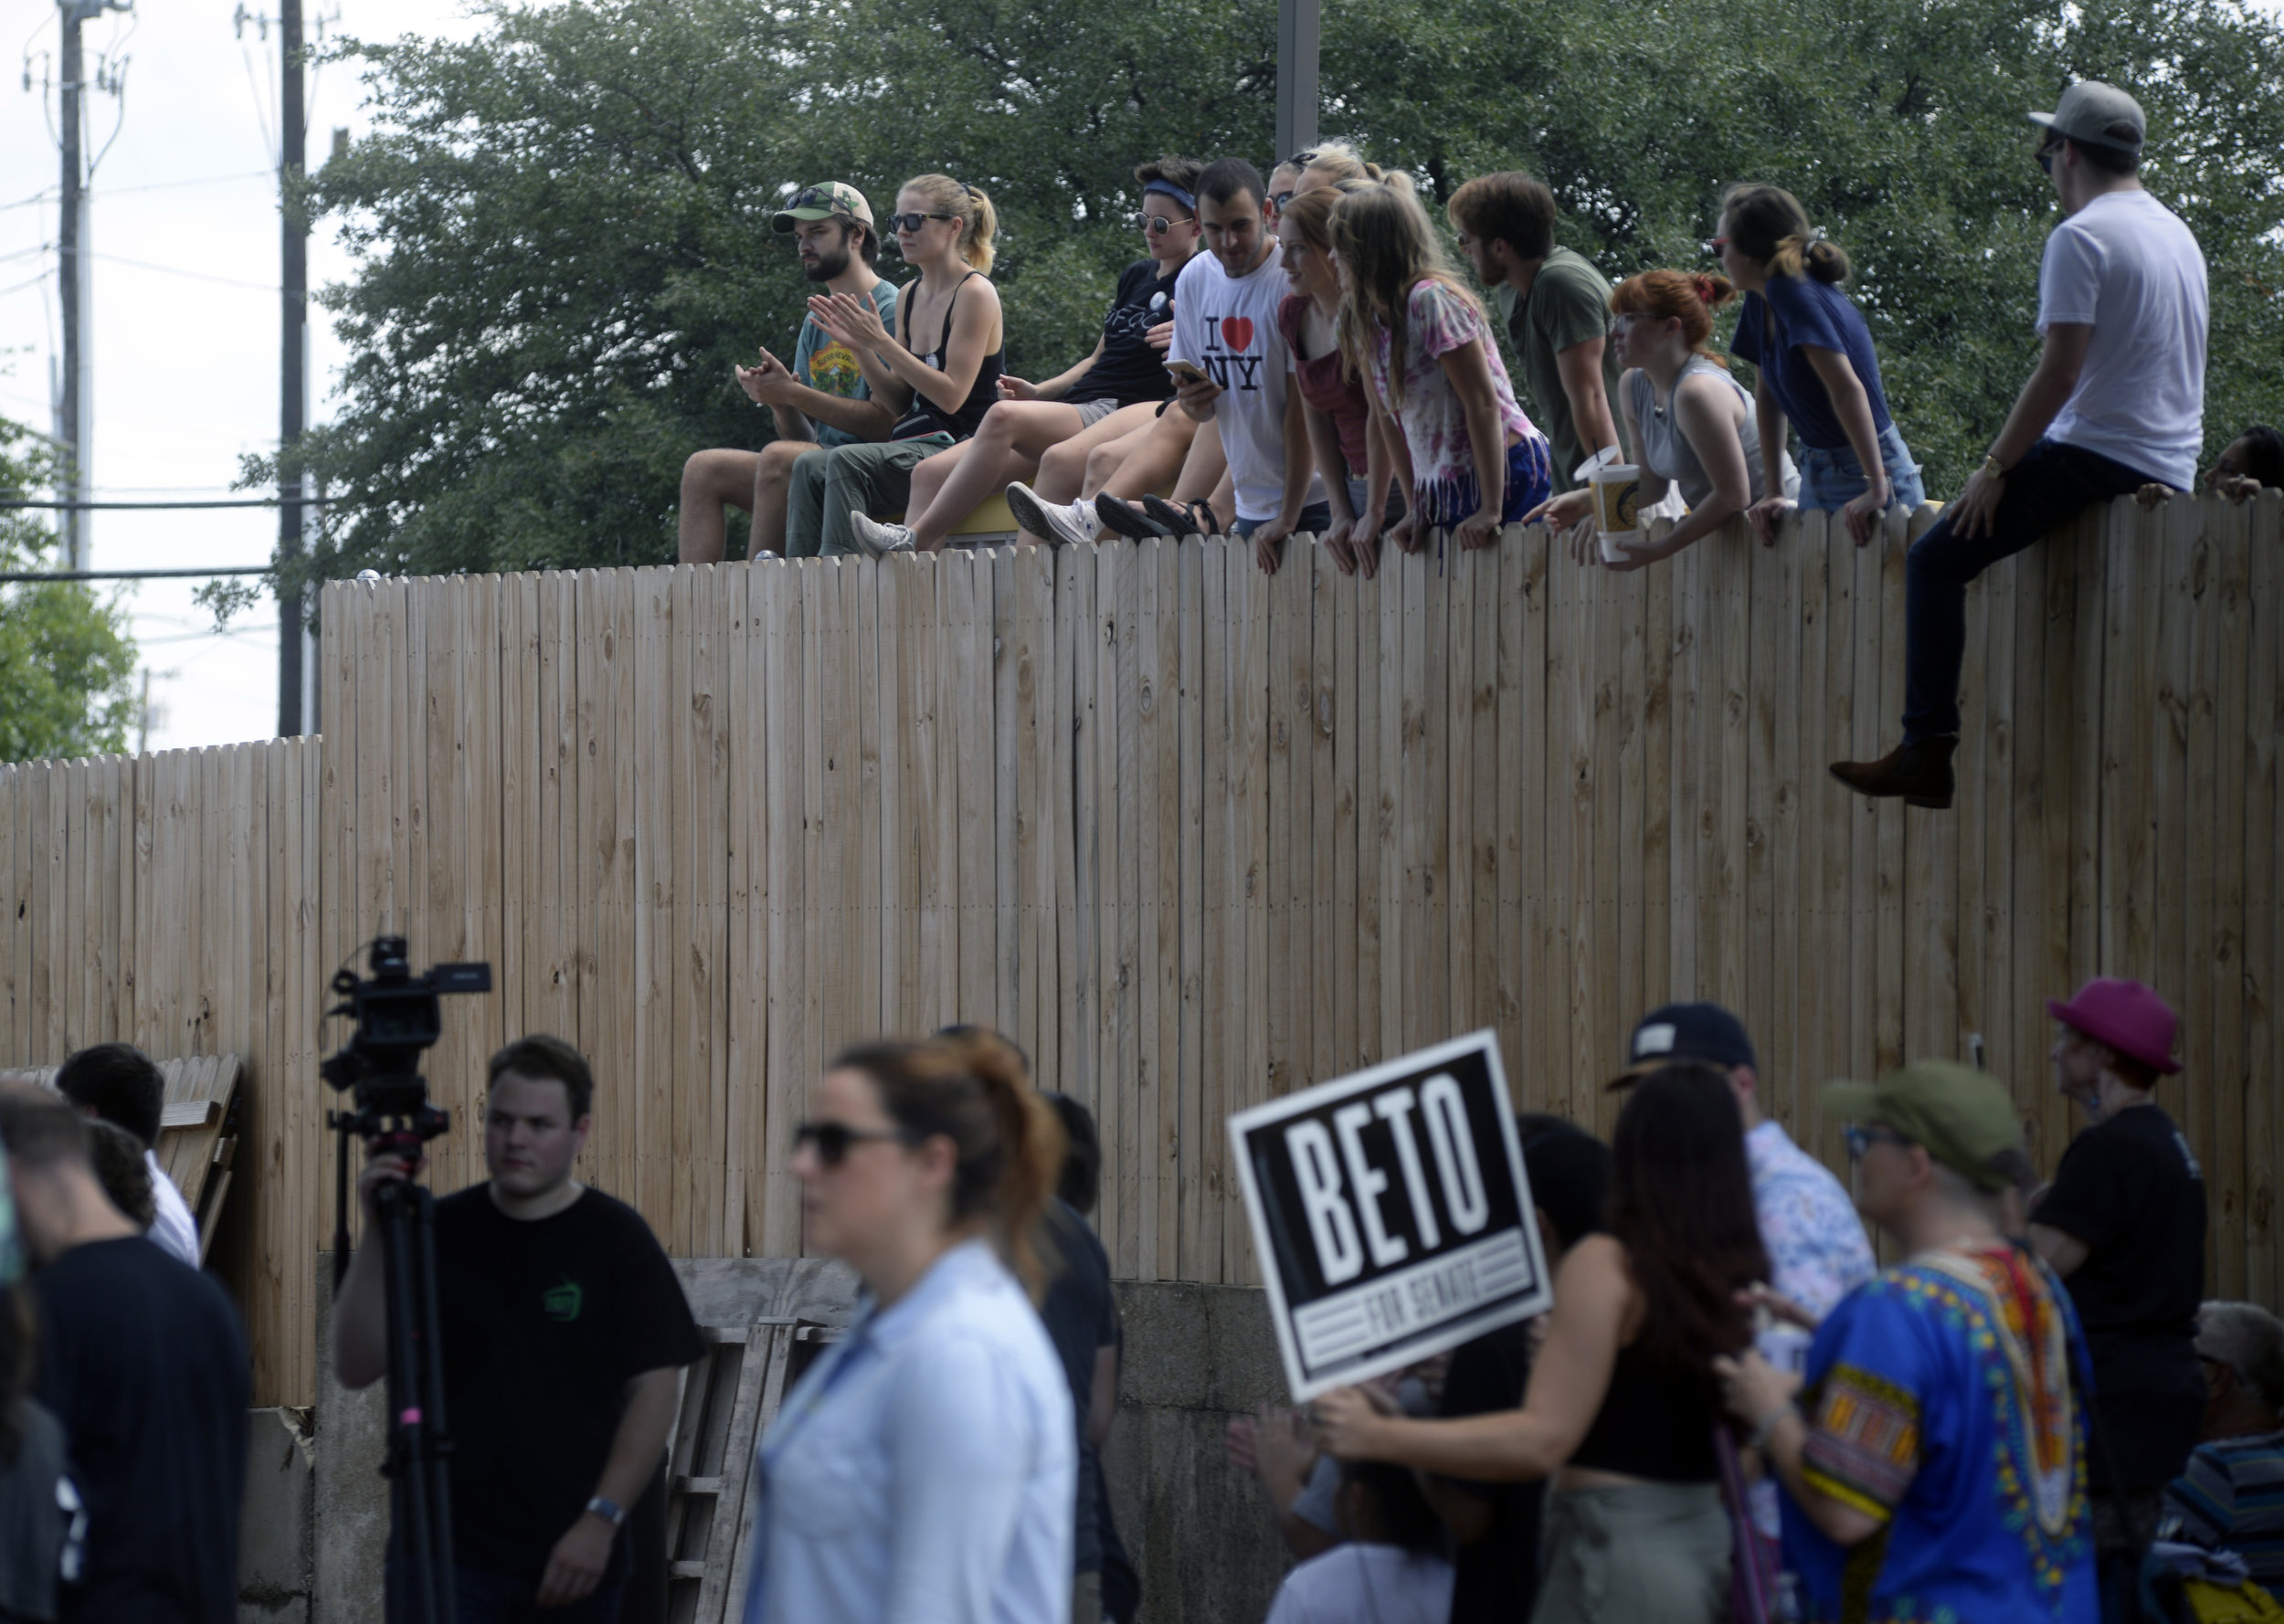 Denton residents look over a fence near Golden Chick adjacent to Backyard on Bell. When the bar/venue filled to capacity during a town hall event for Senate candidate Beto O'Rourke, locals were forced to find adjacent areas to listen to the rally. Jake King/DRC